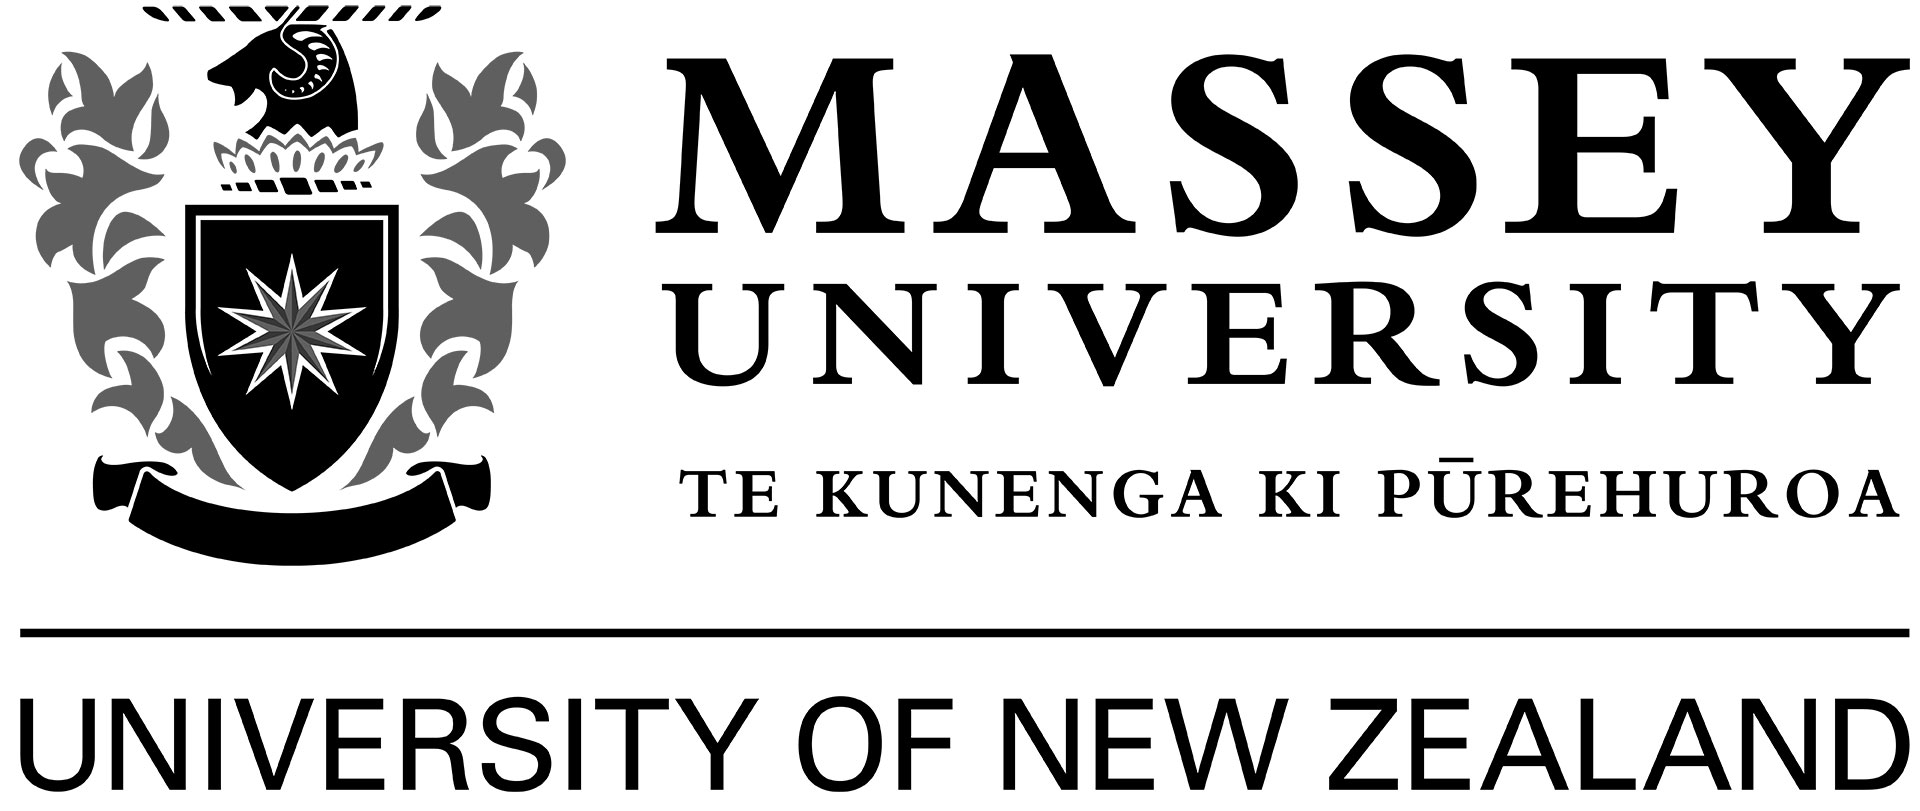 Massey-University_Grey.jpg